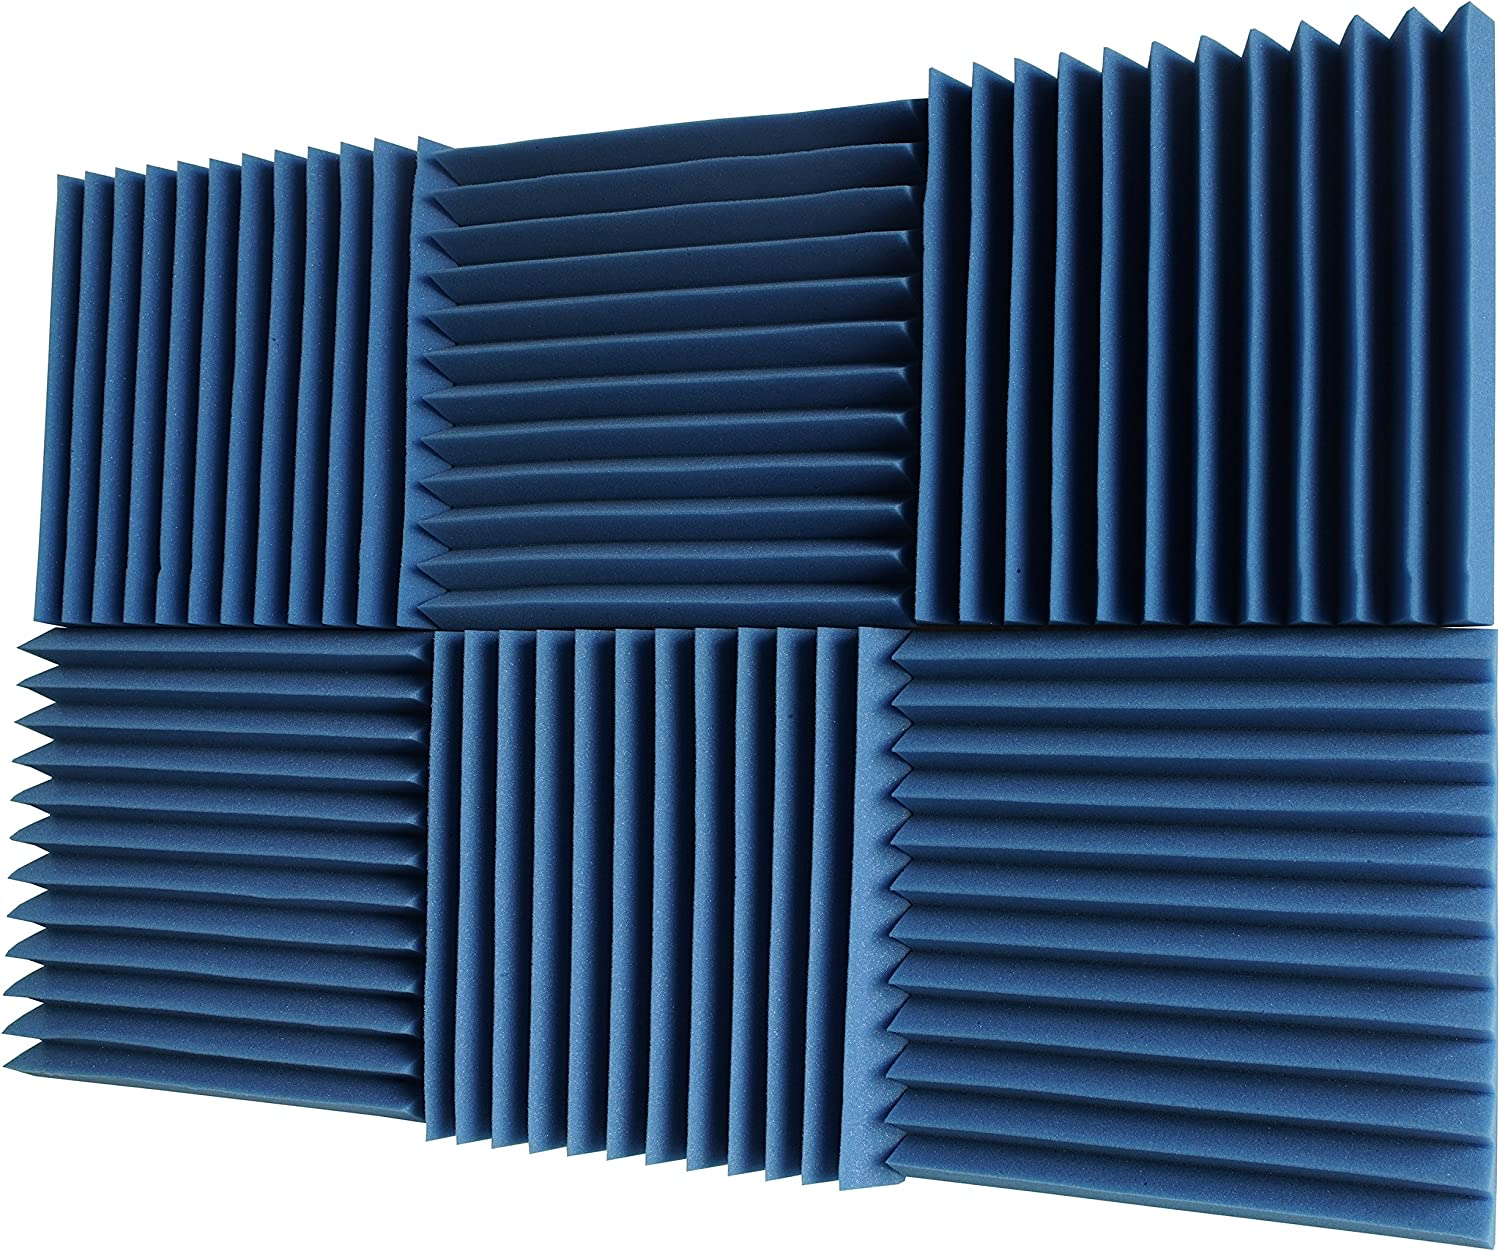 "Foamily 6 Pack - All Ice Blue Acoustic Panels Studio Foam Wedges 2"" X 12"" X 12"""